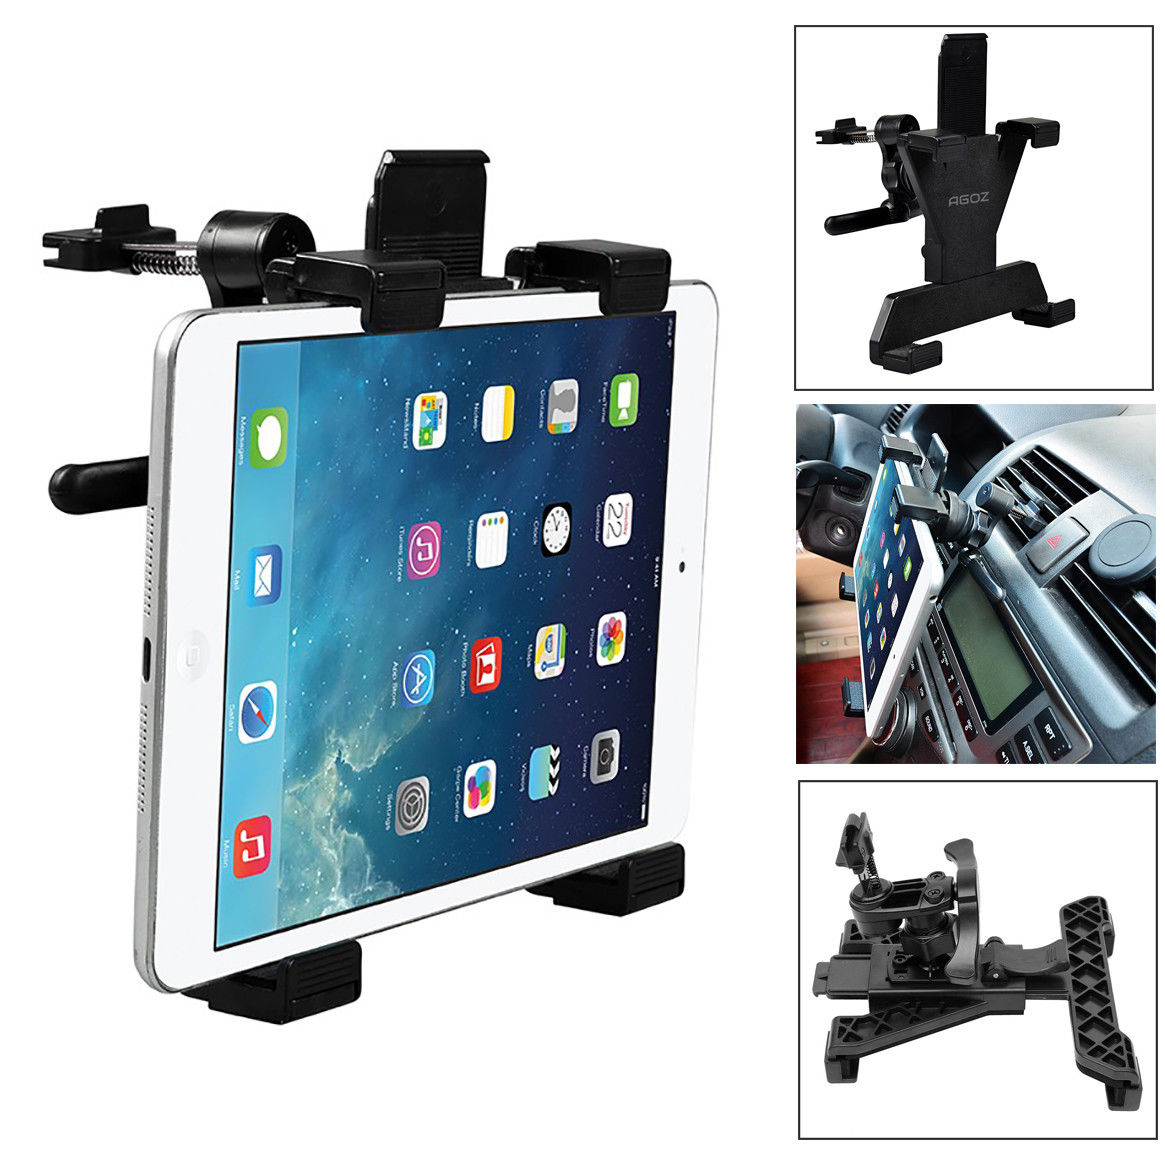 AGOZ Universal 360° Car Air Vent Mount Tablet Holder Stand Cradle